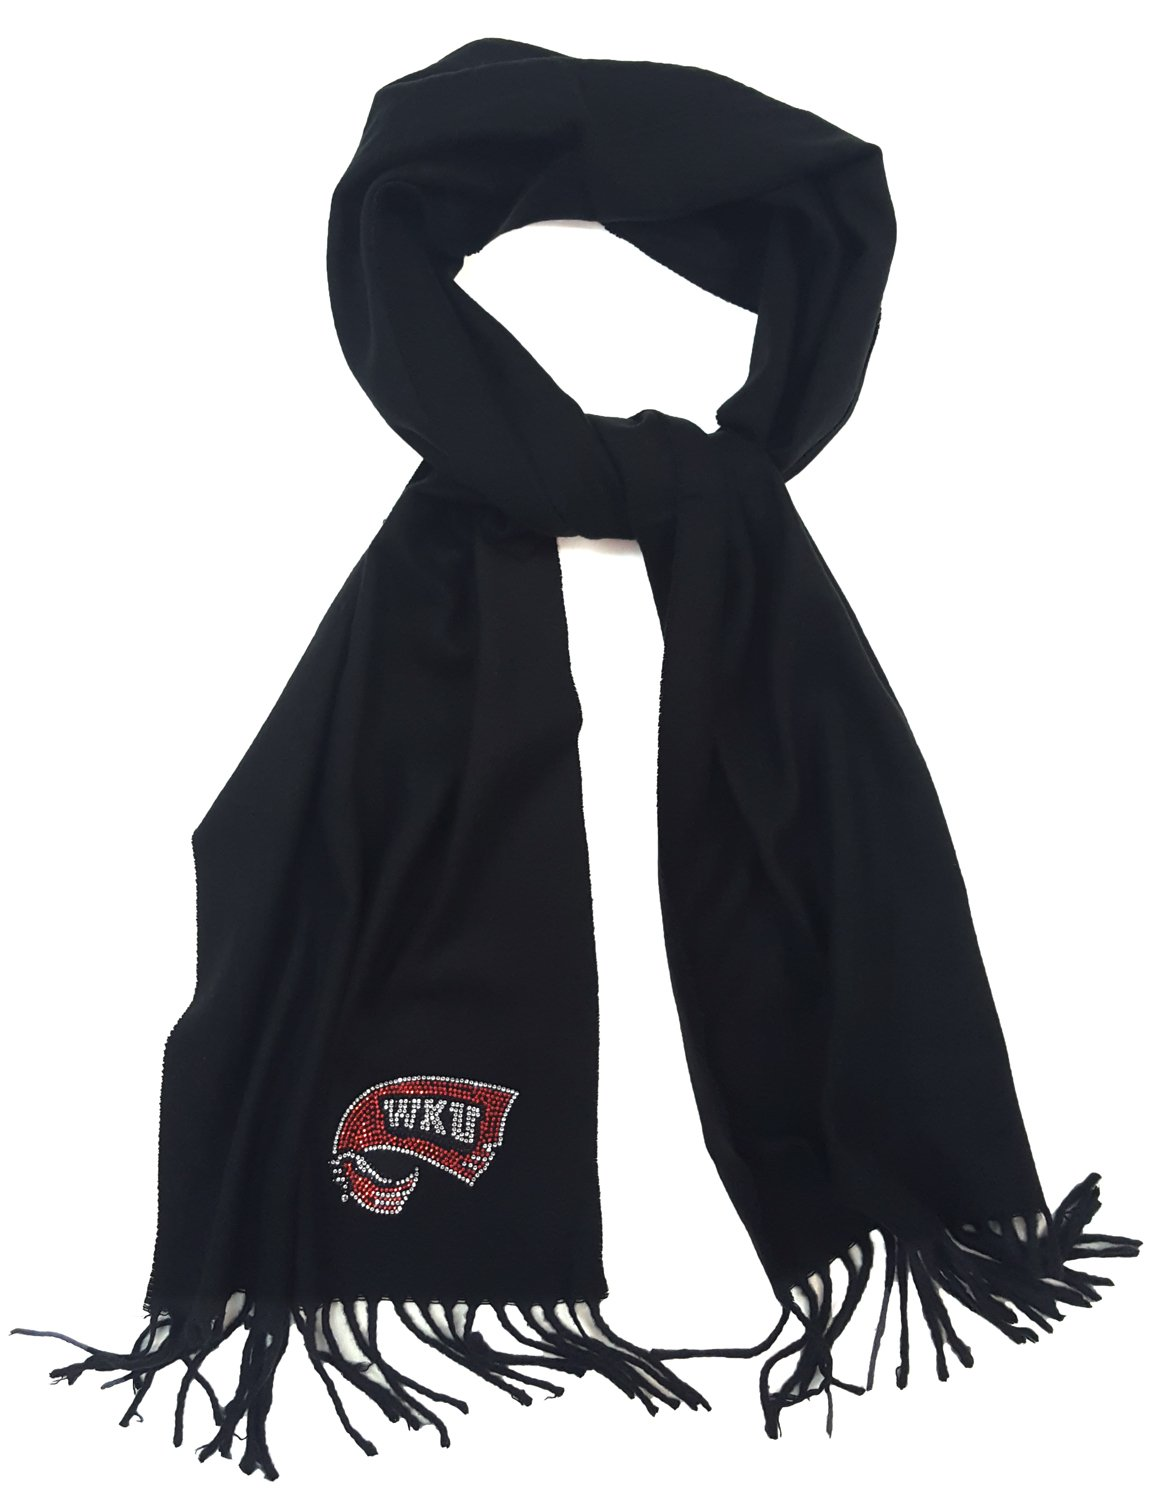 Nitro USA Fringed Cashmere Feel Scarf with Small WKU Towel, One Size, Black